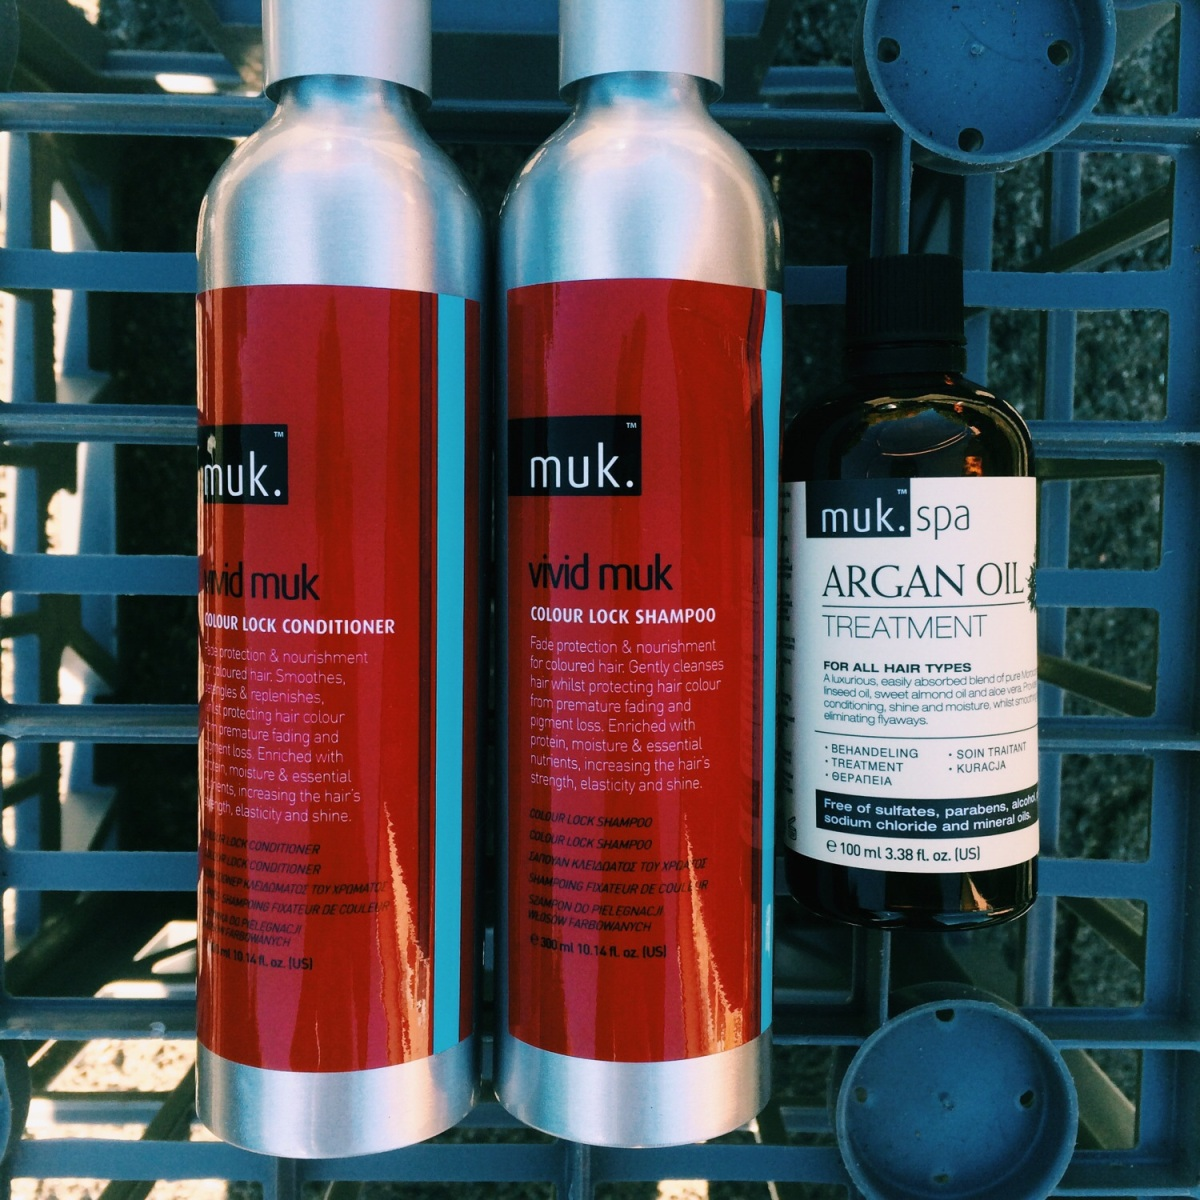 BEAUTY REVIEW: Muk Hair Care for a winter revamp